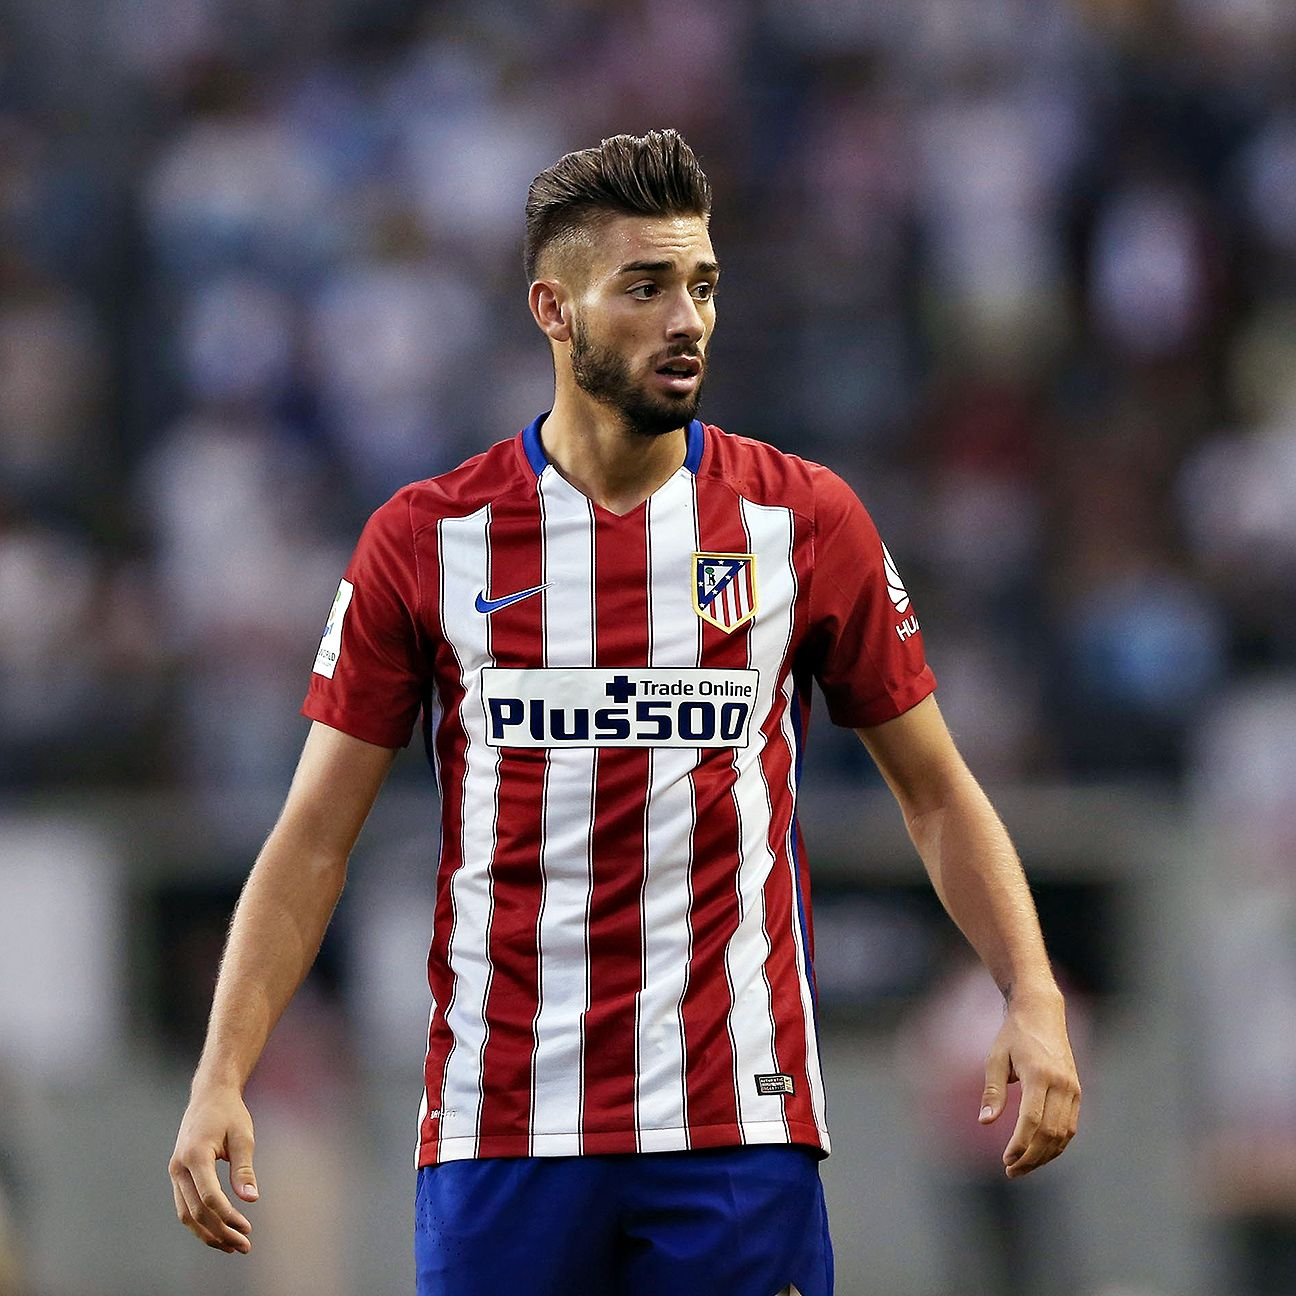 The little used Yannick Ferreira-Carrasco could be in line for his first start of the season on Tuesday against Getafe.